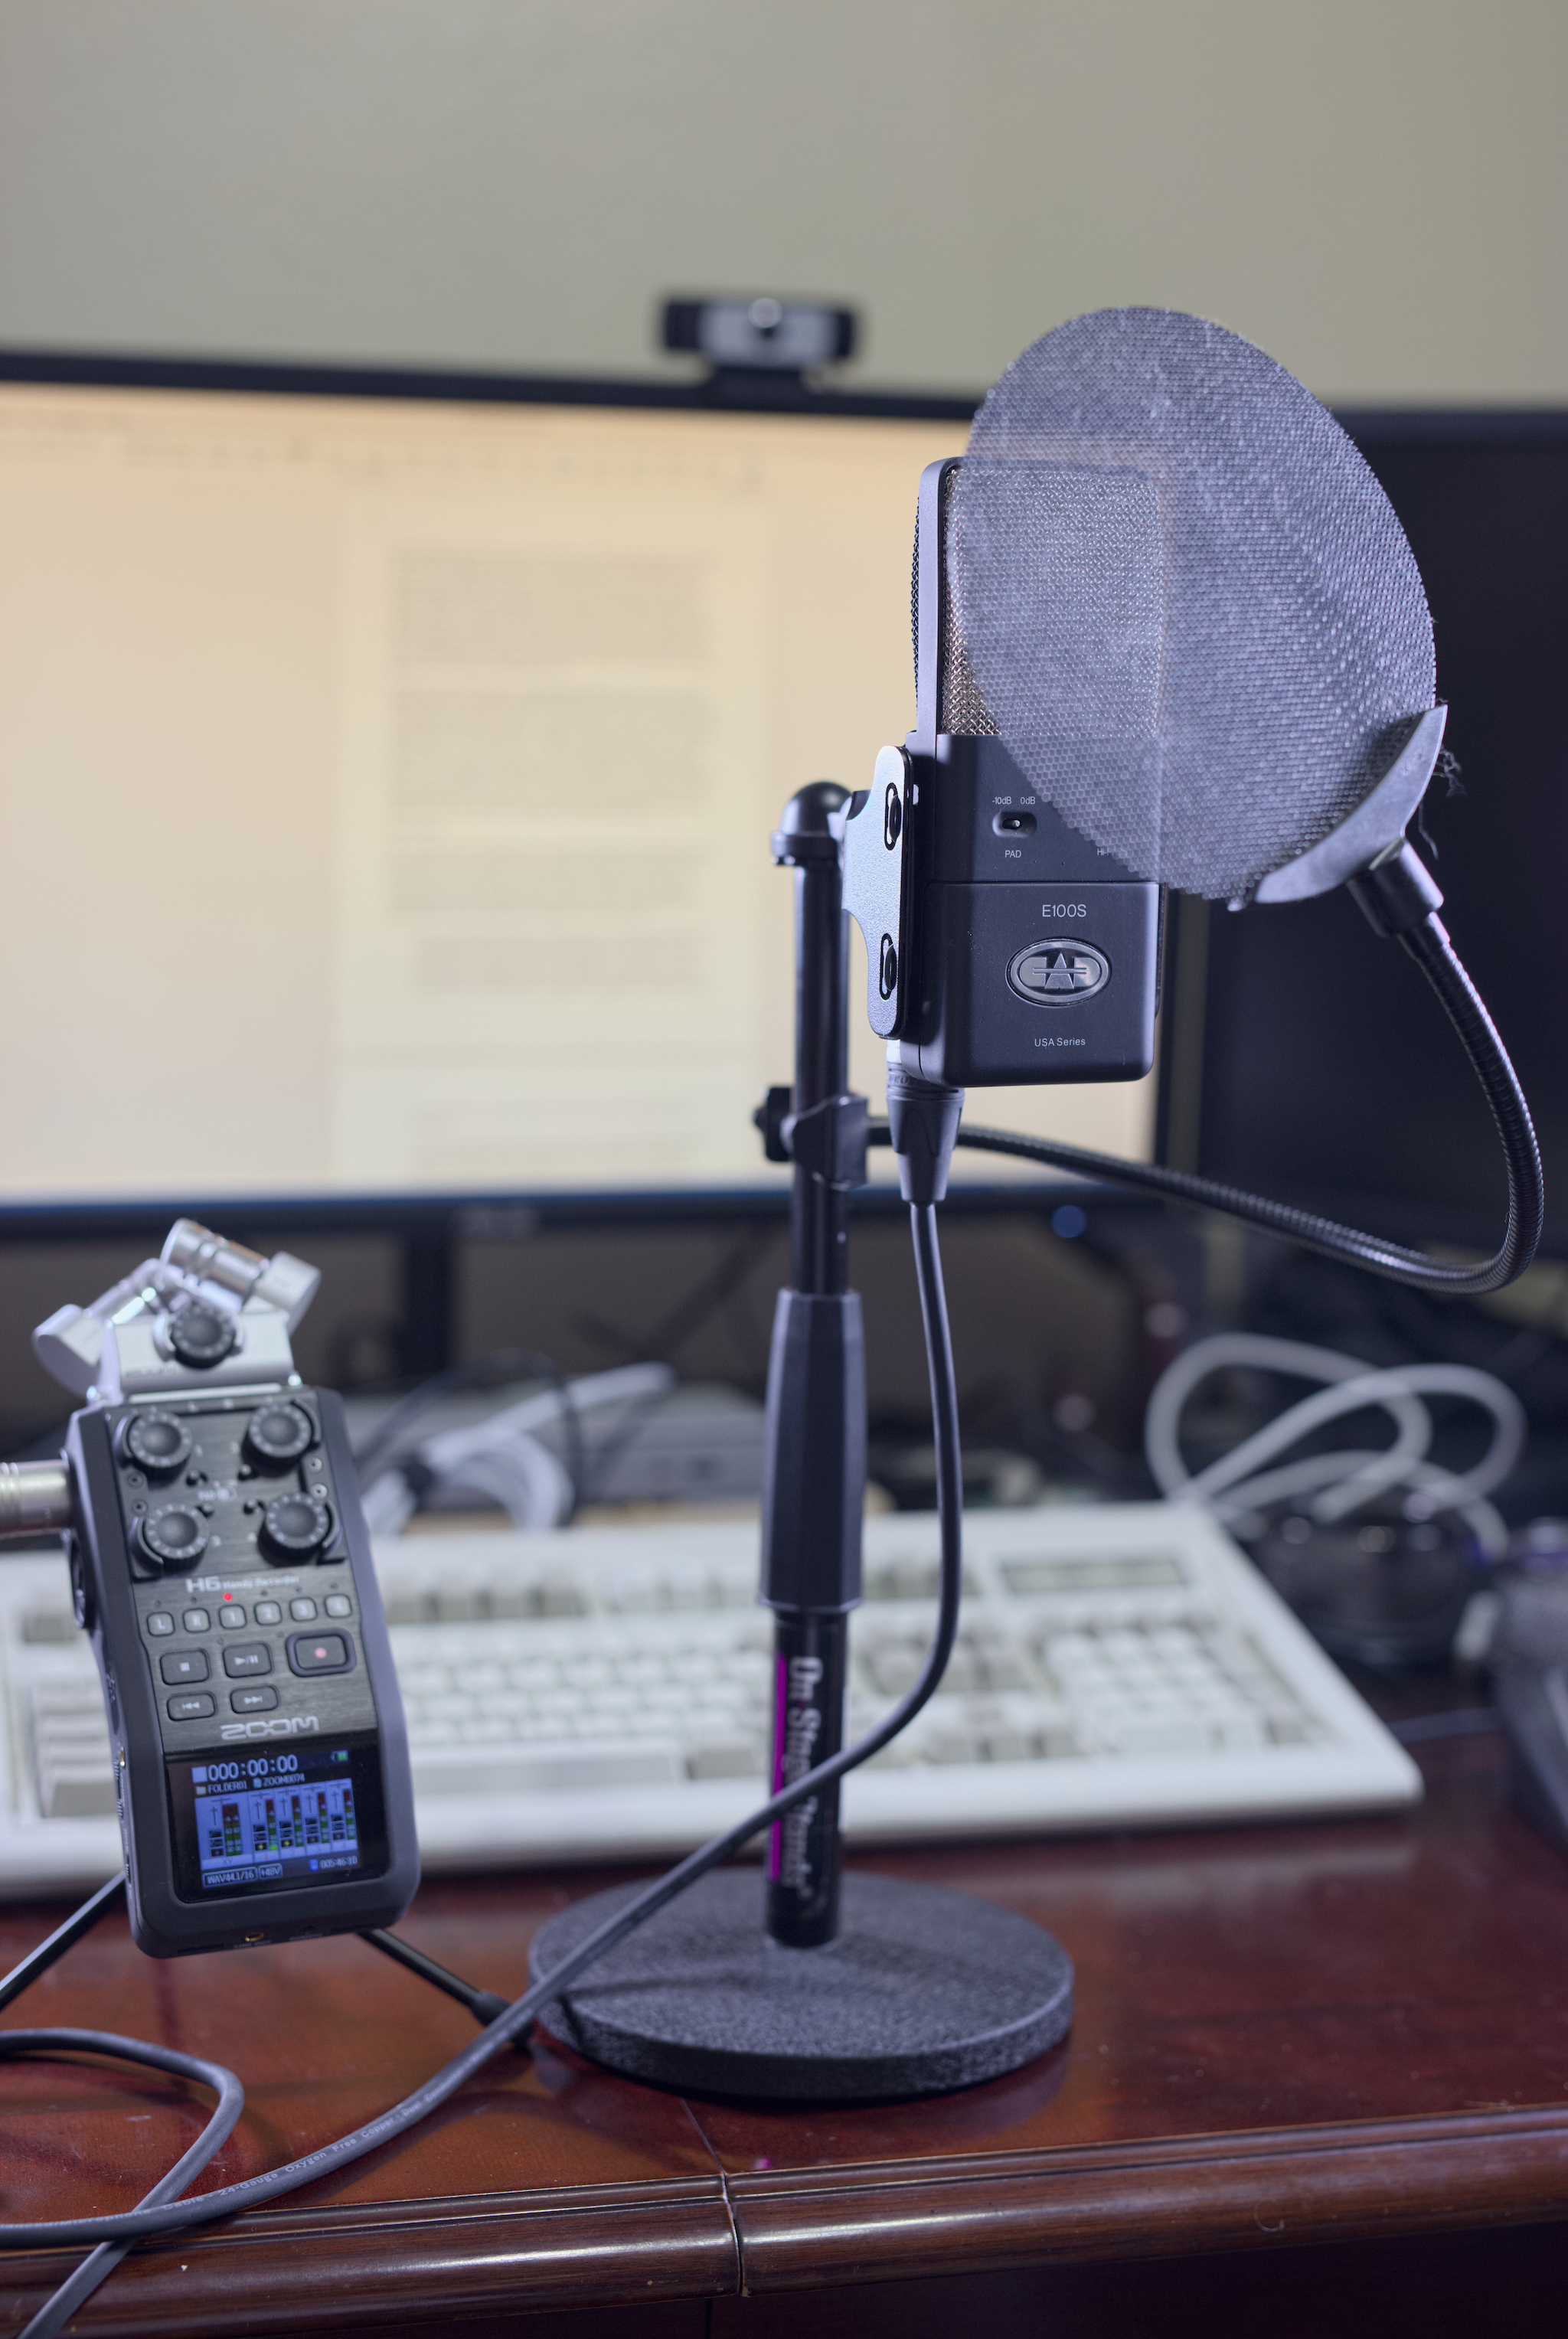 A picture of a microphone and audio interface.